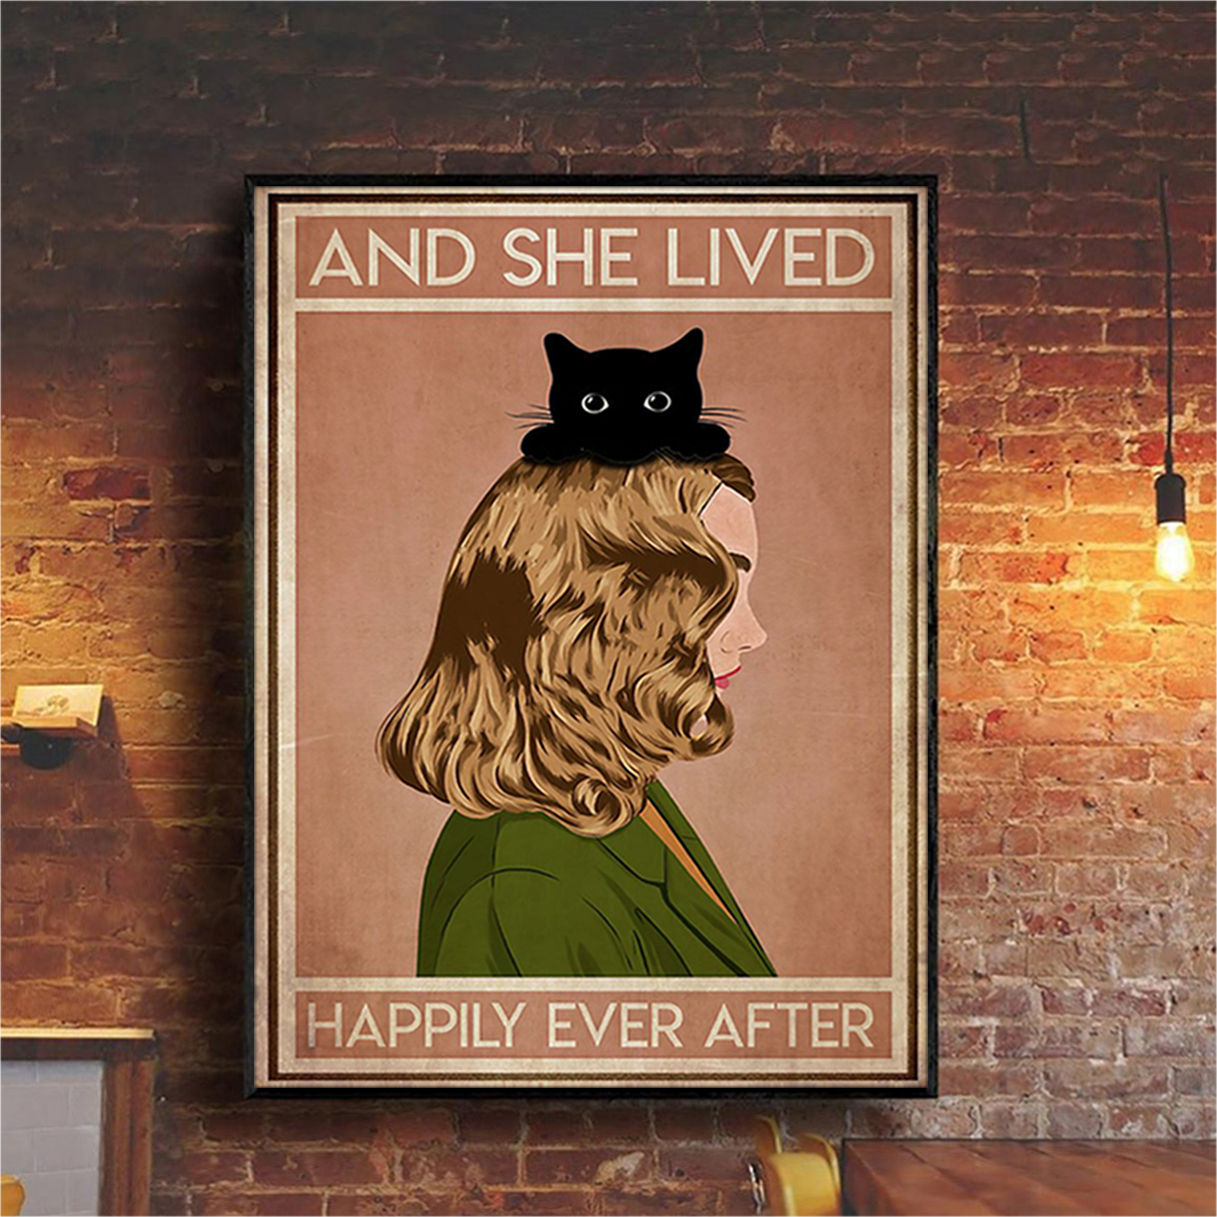 Blonde girl cat and she lived happily ever after poster A2